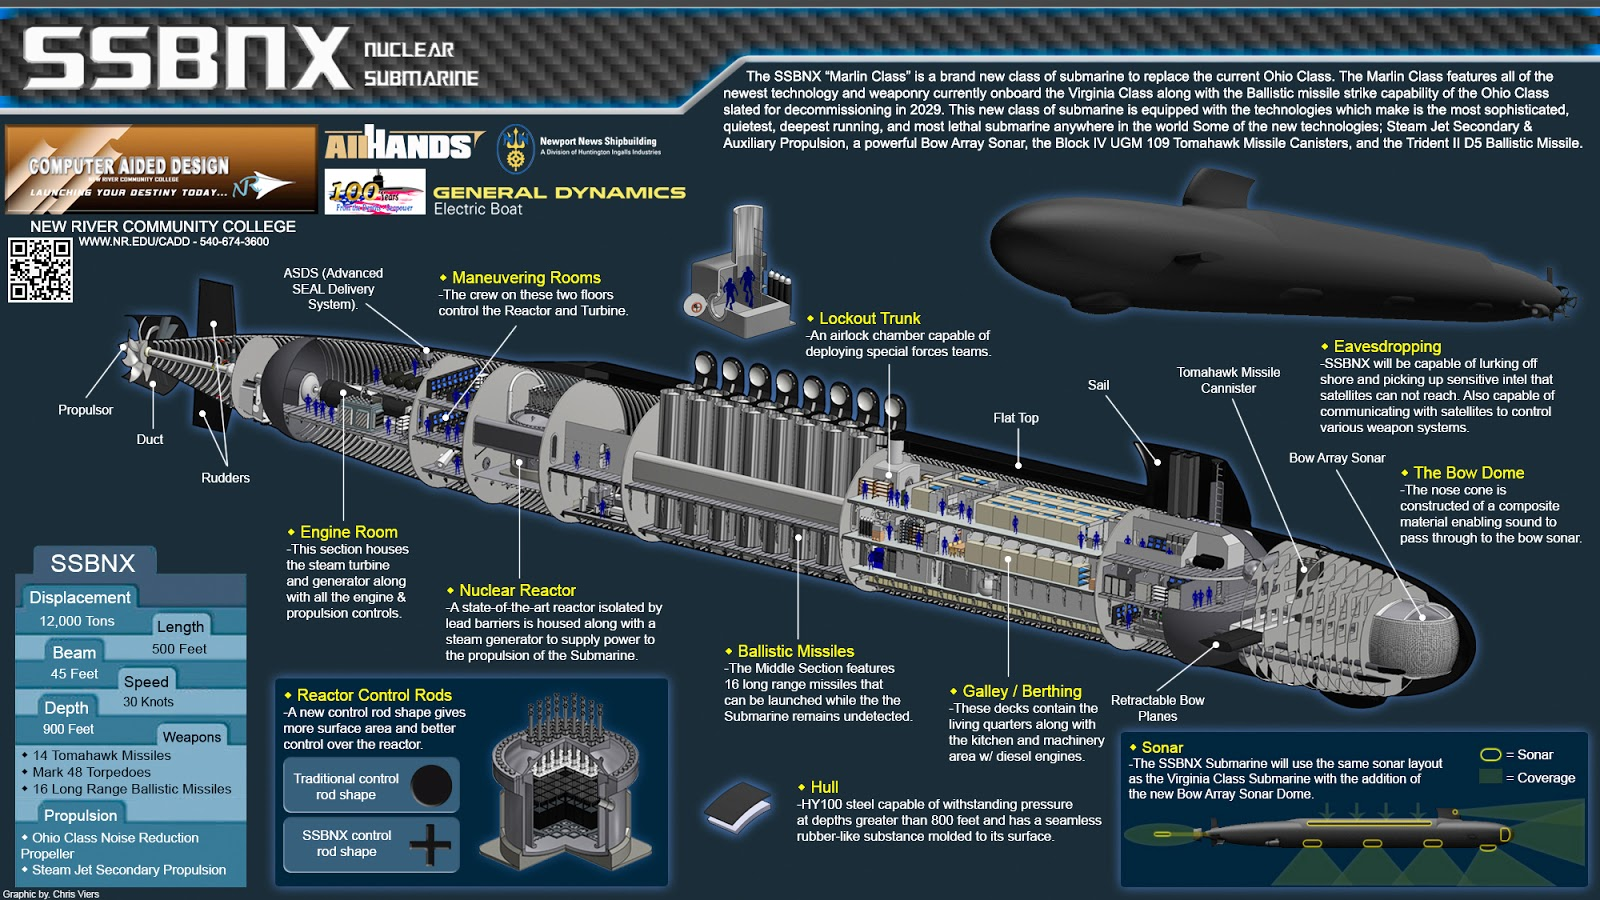 ohio class submarine diagram ford wiring 7 pin trailer plug 12 navy future ssbn(x) nuclear missile submarines will cost about $96 billion to procure ...